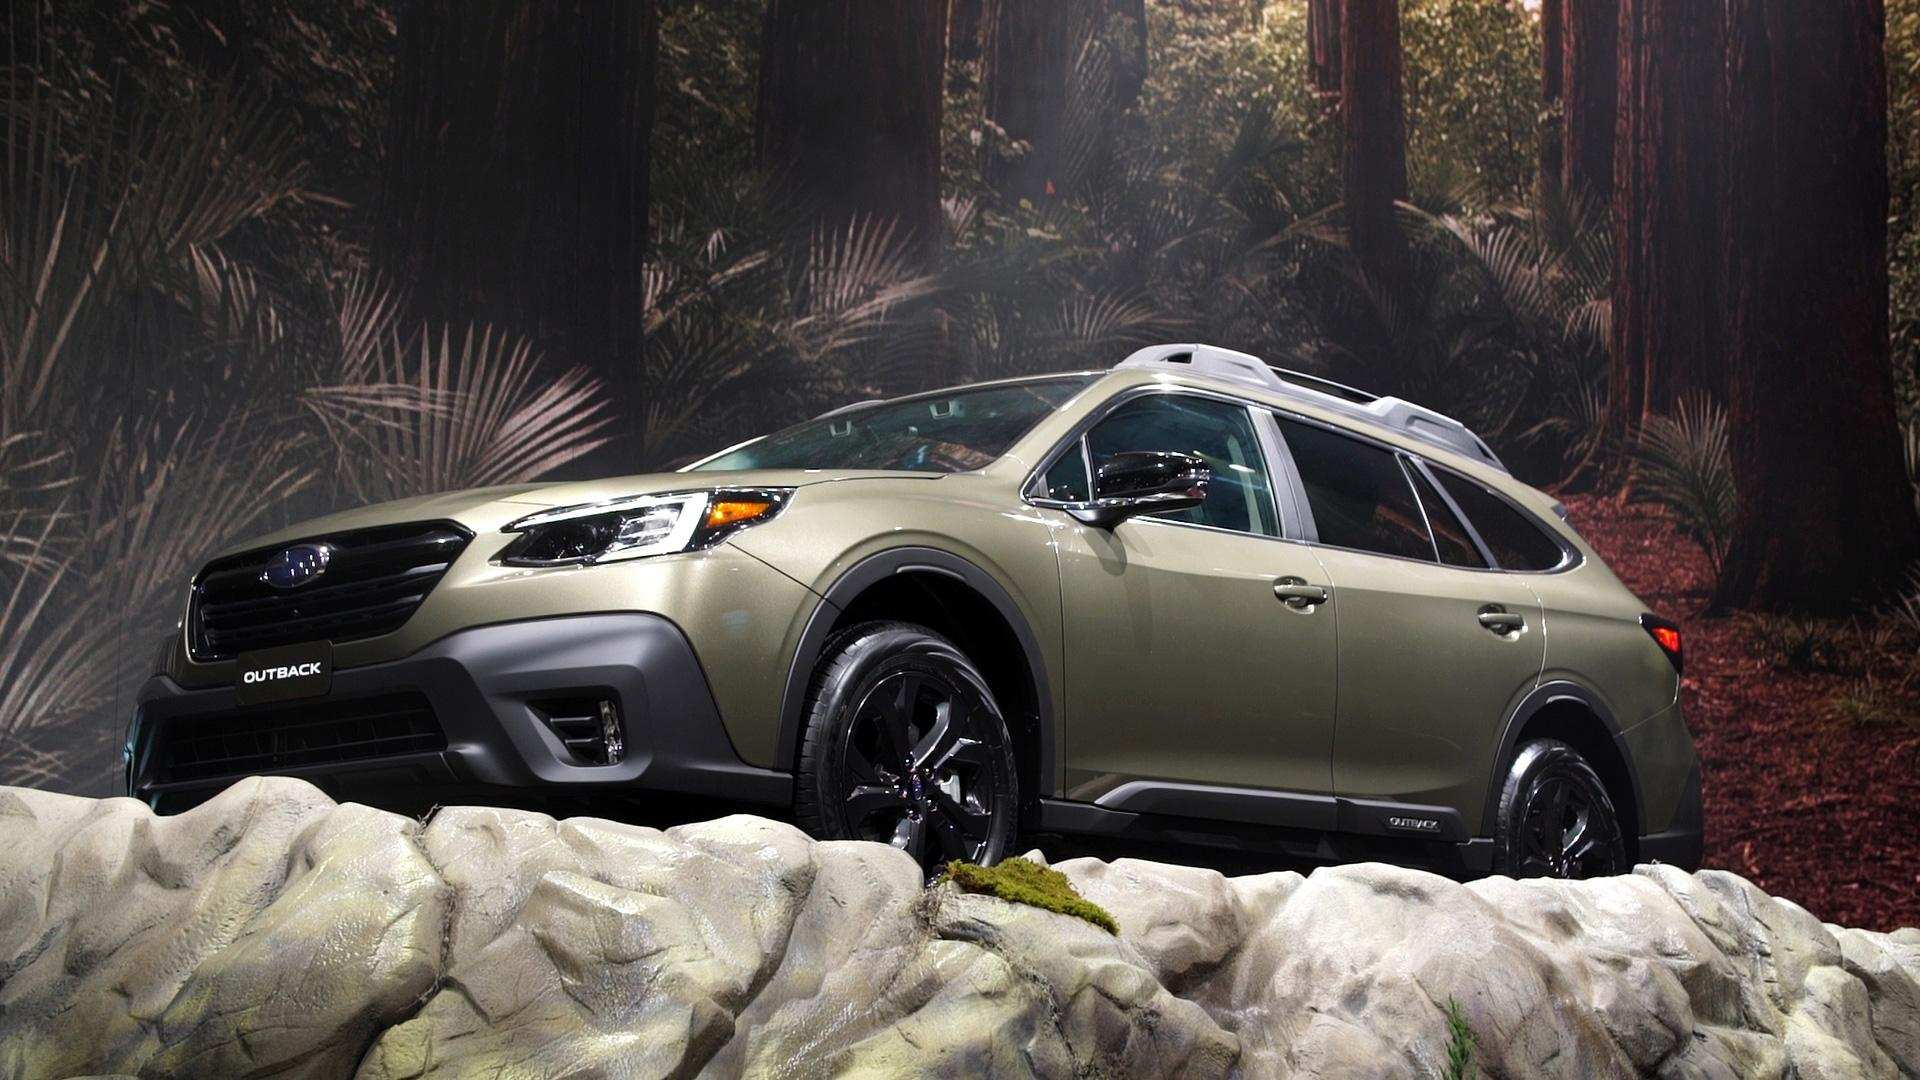 69 Best Review 2020 Subaru Outback Gas Mileage History for 2020 Subaru Outback Gas Mileage